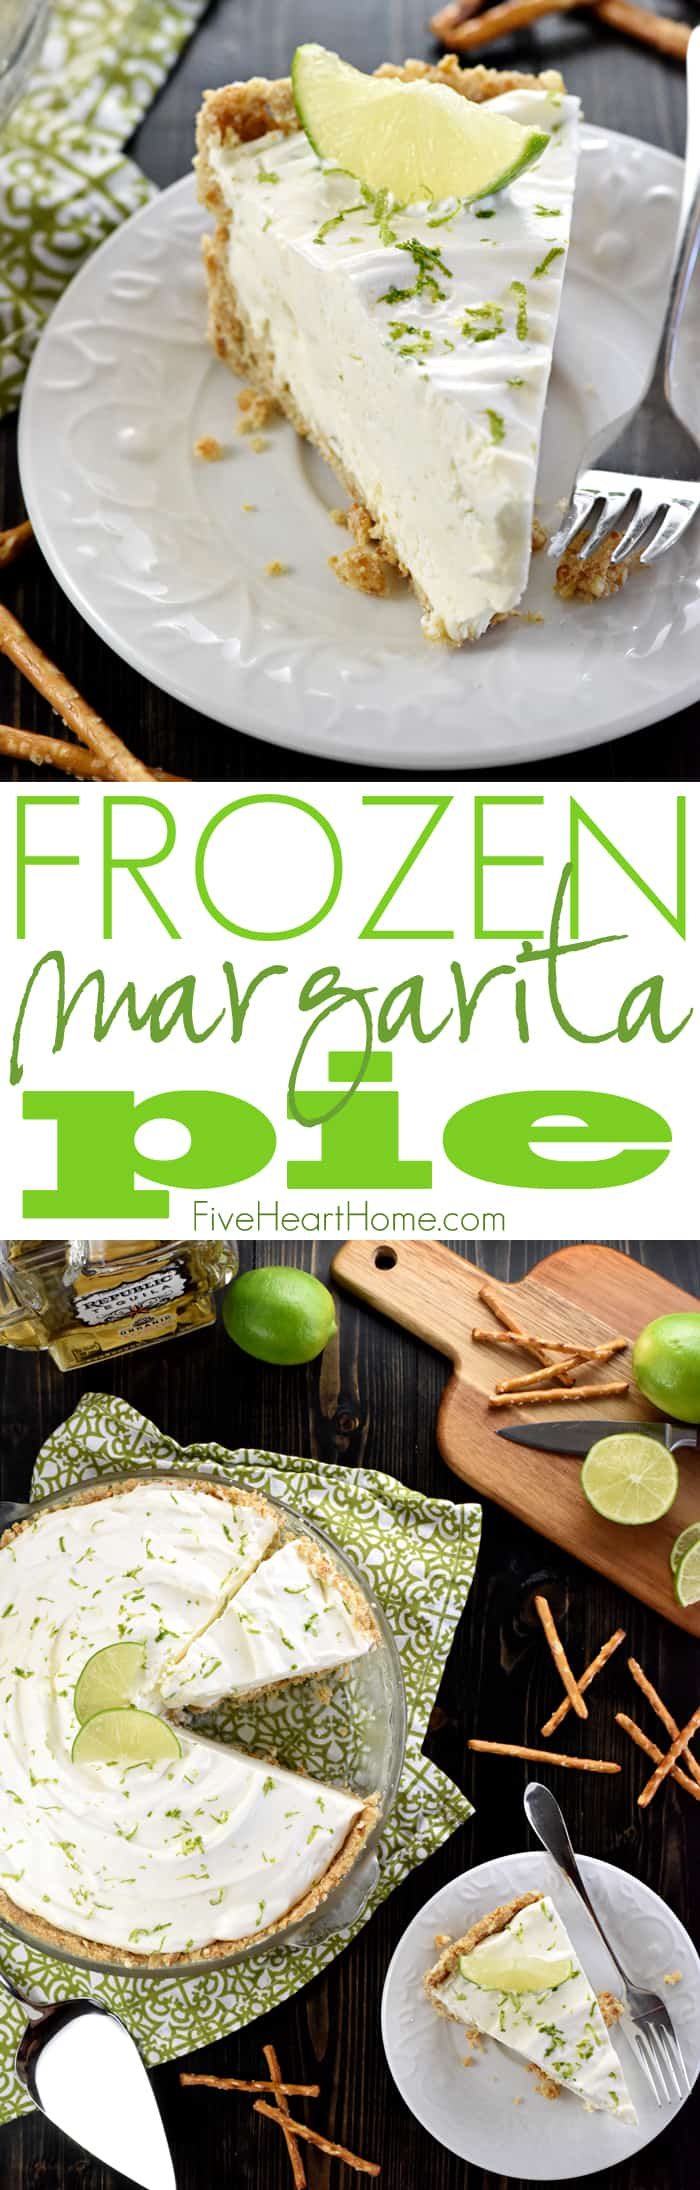 No-Bake Frozen Margarita Pie ~ cool and creamy, with a salty-sweet pretzel crust and a frosty filling flavored with fresh lime juice, tequila, and triple sec...or leave out the liquor and boost the lime juice for a family-friendly variation! | FiveHeartHome.com via @fivehearthome